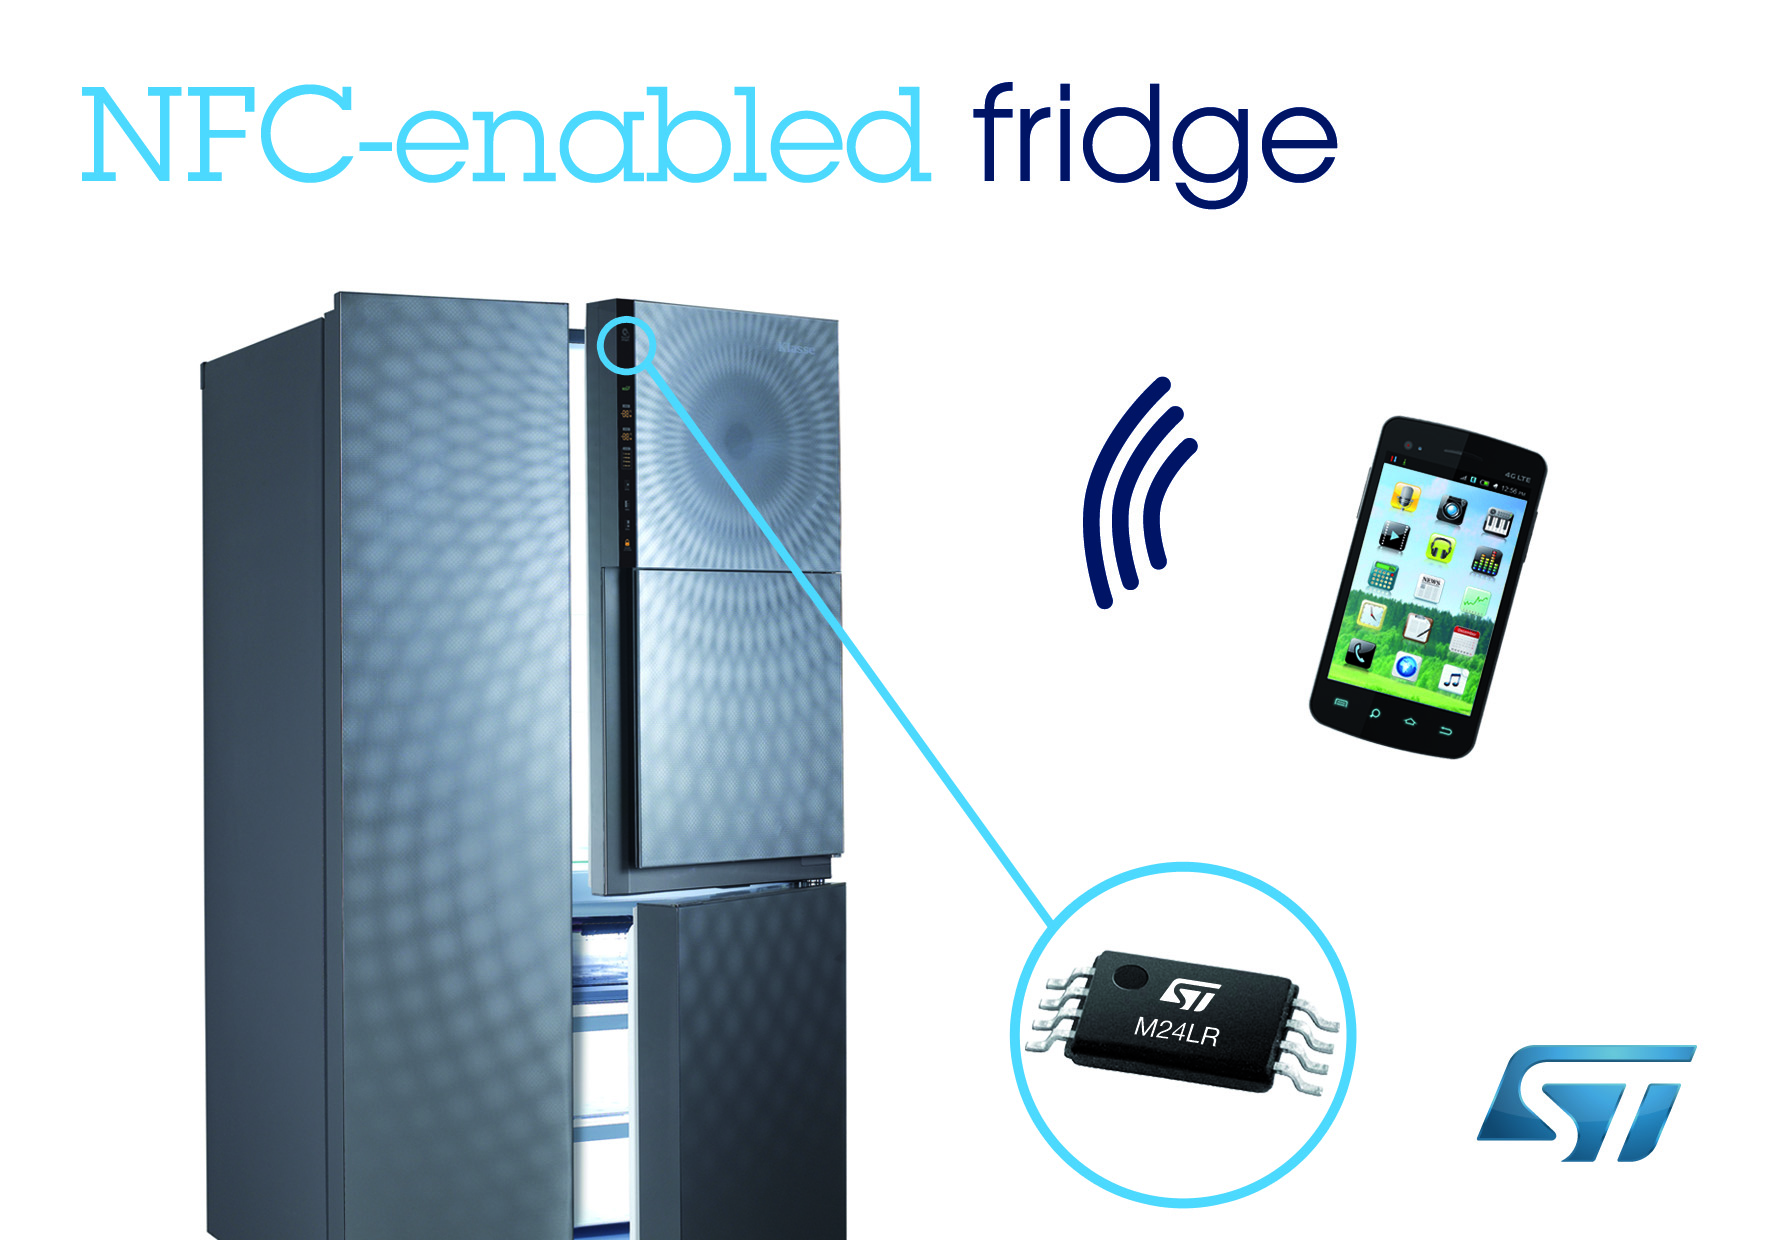 Korea's First NFC Fridge powered by STMicroelectronics Contactless Memory